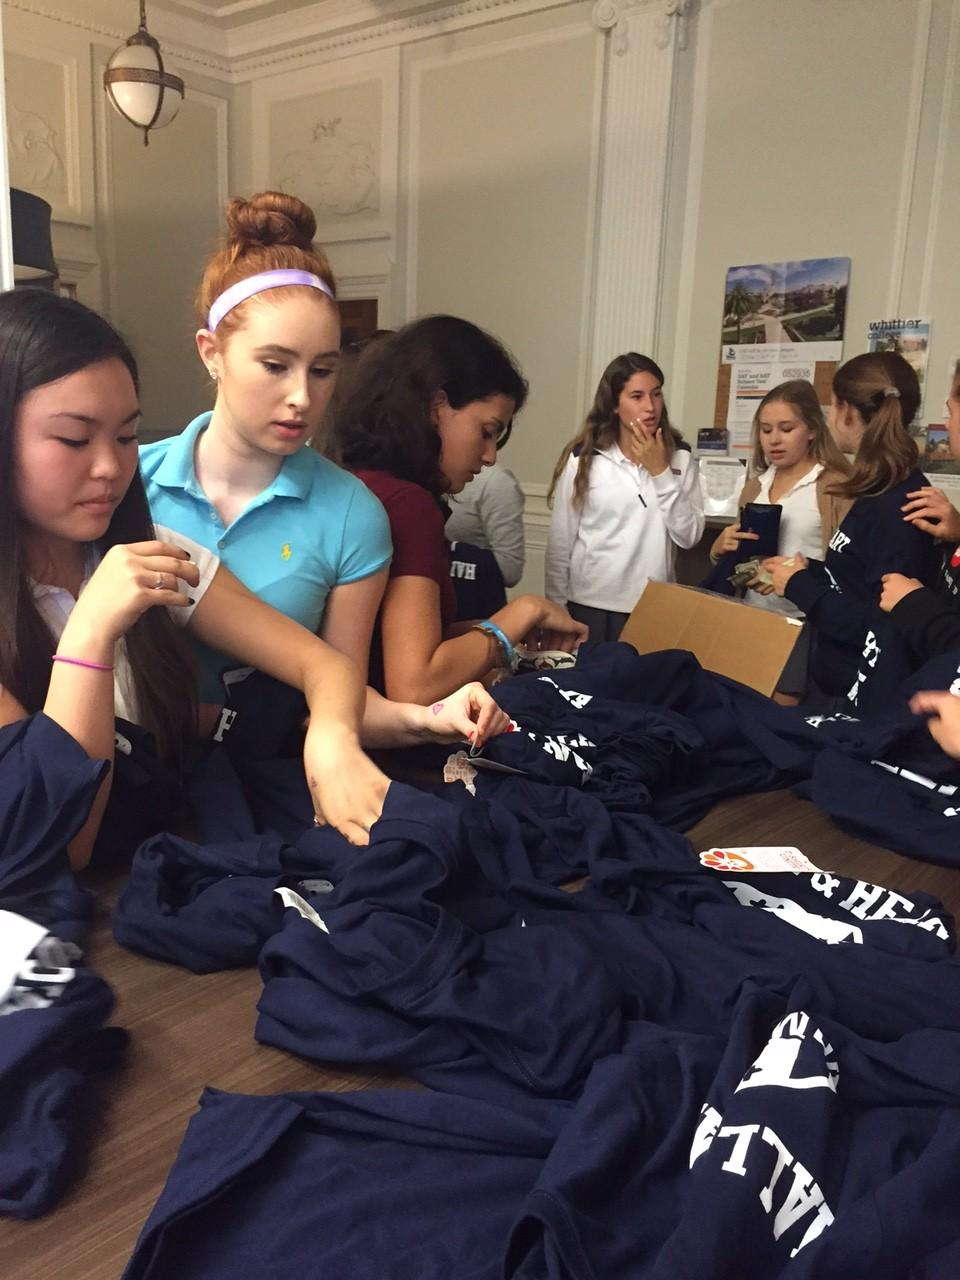 Students purchased shirts for this Saturday's Homecoming football game. More shirts will be available for sale tomorrow in the Center.